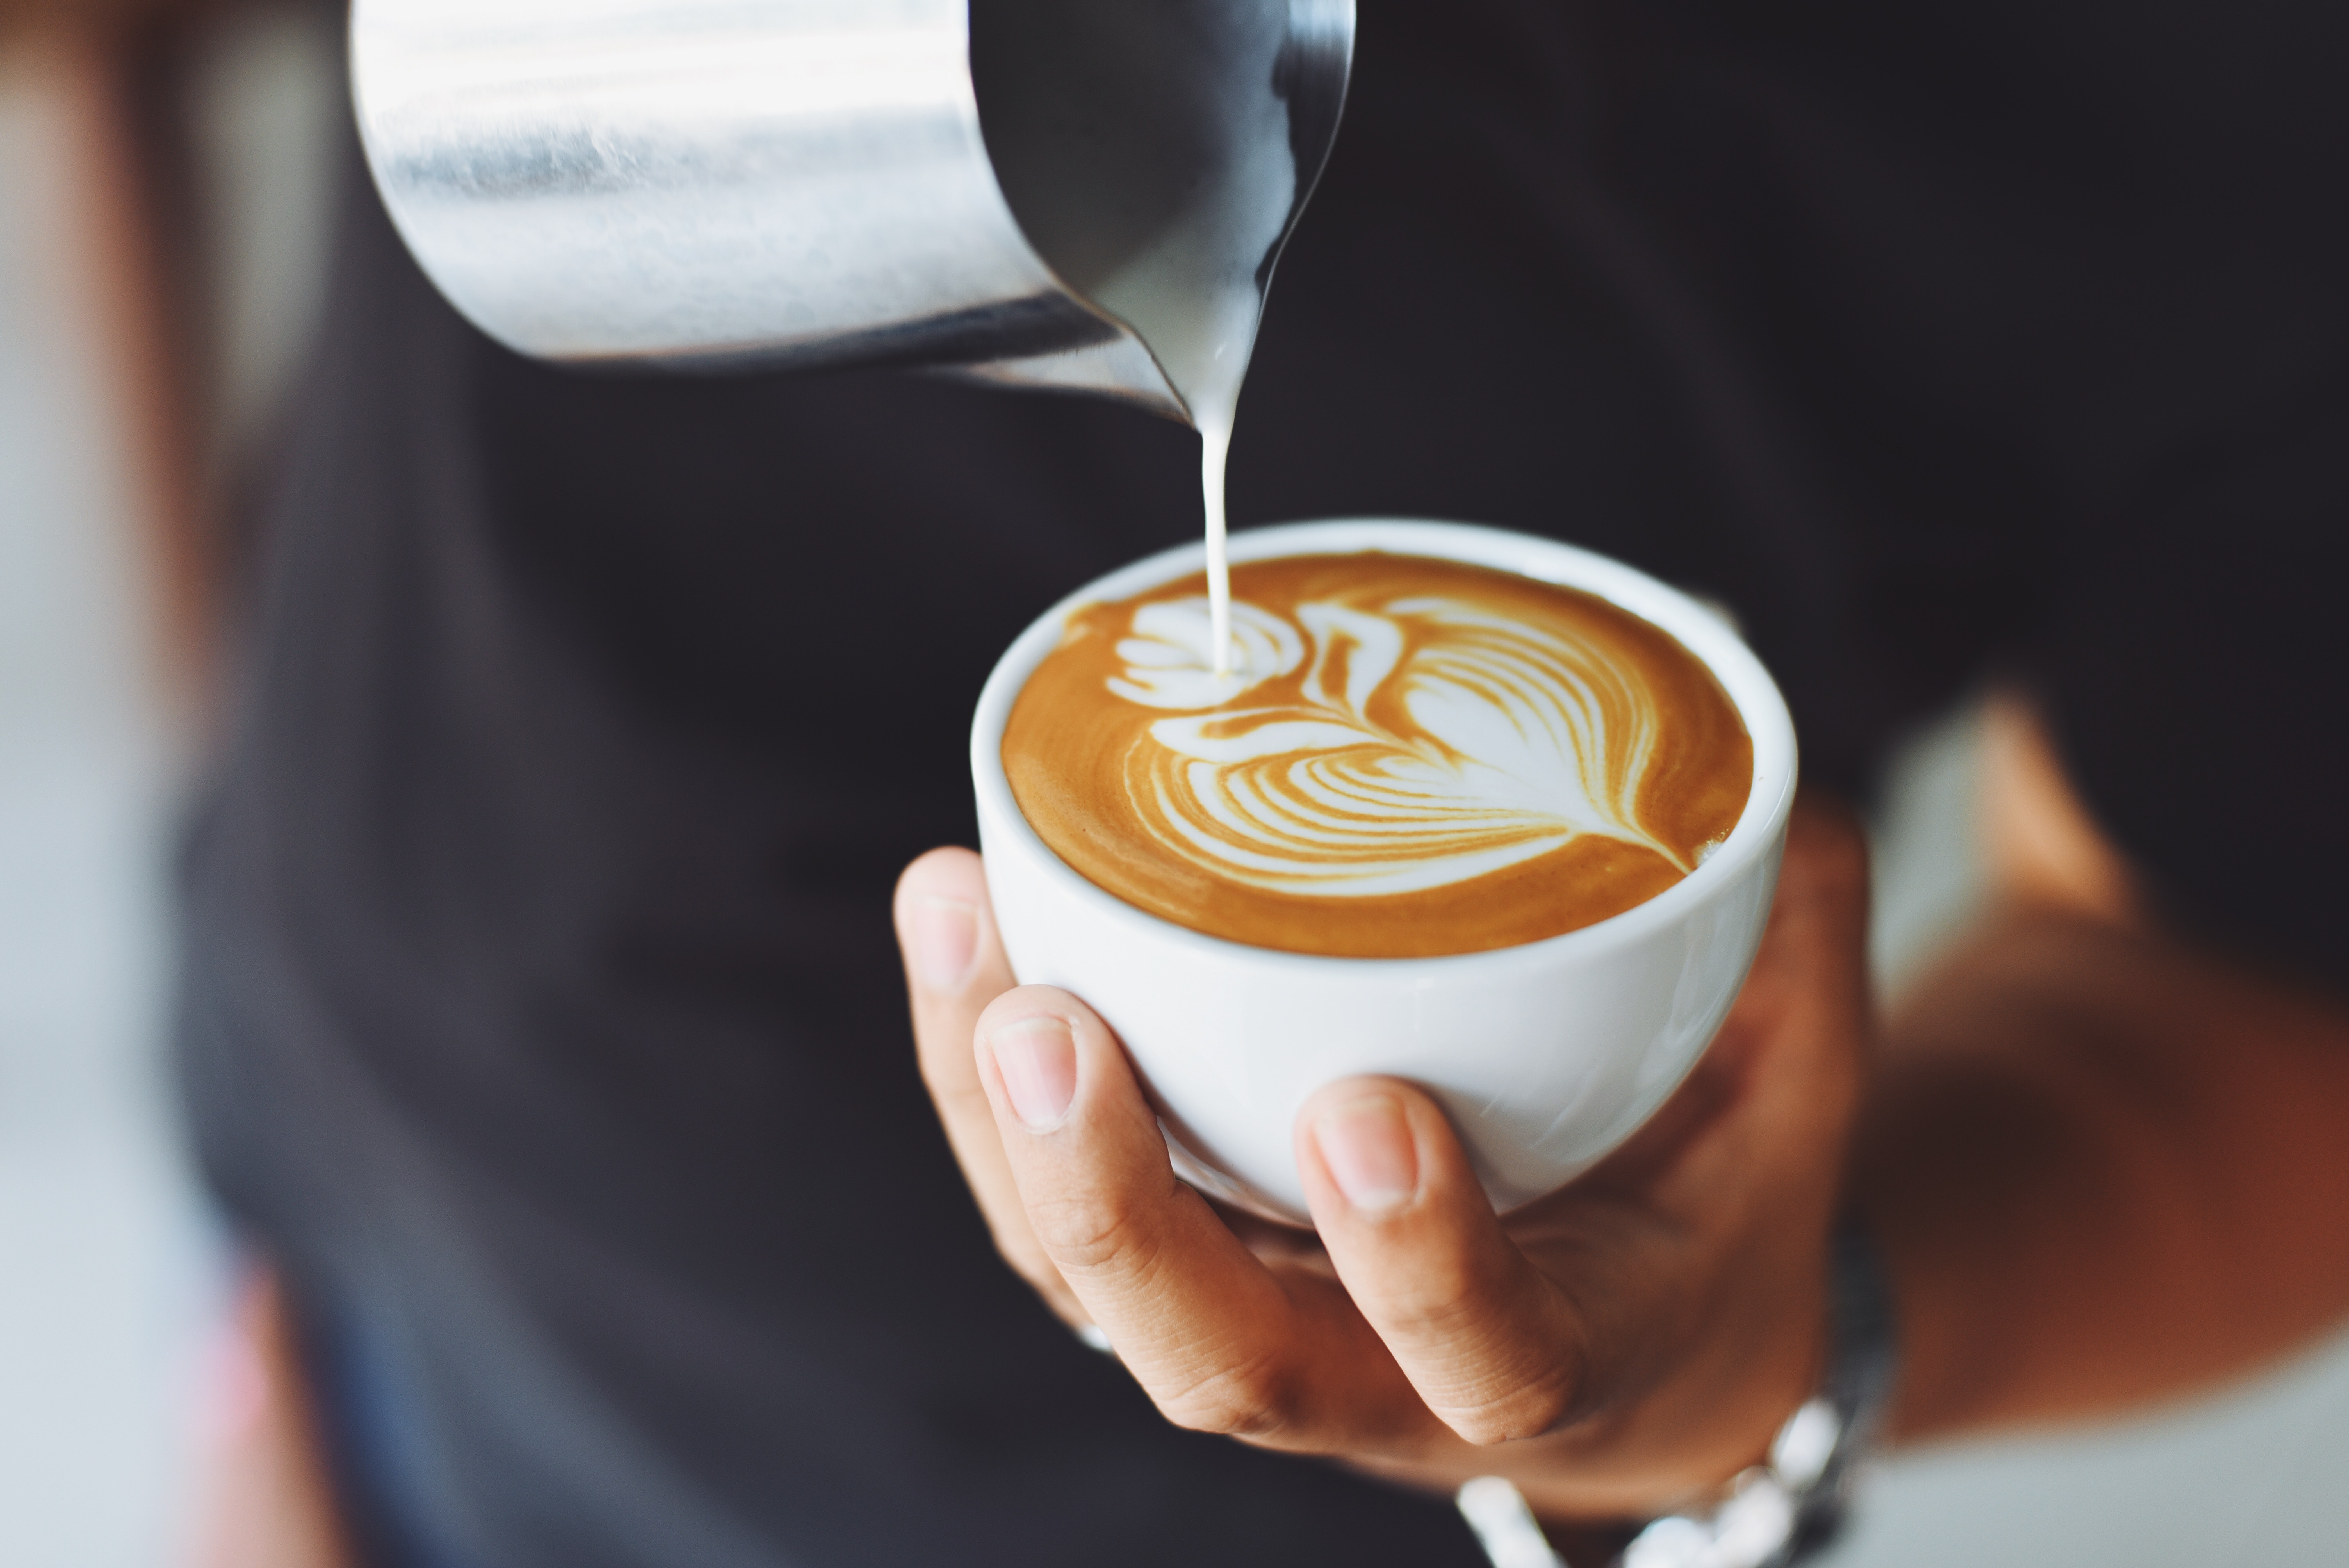 latte being poured